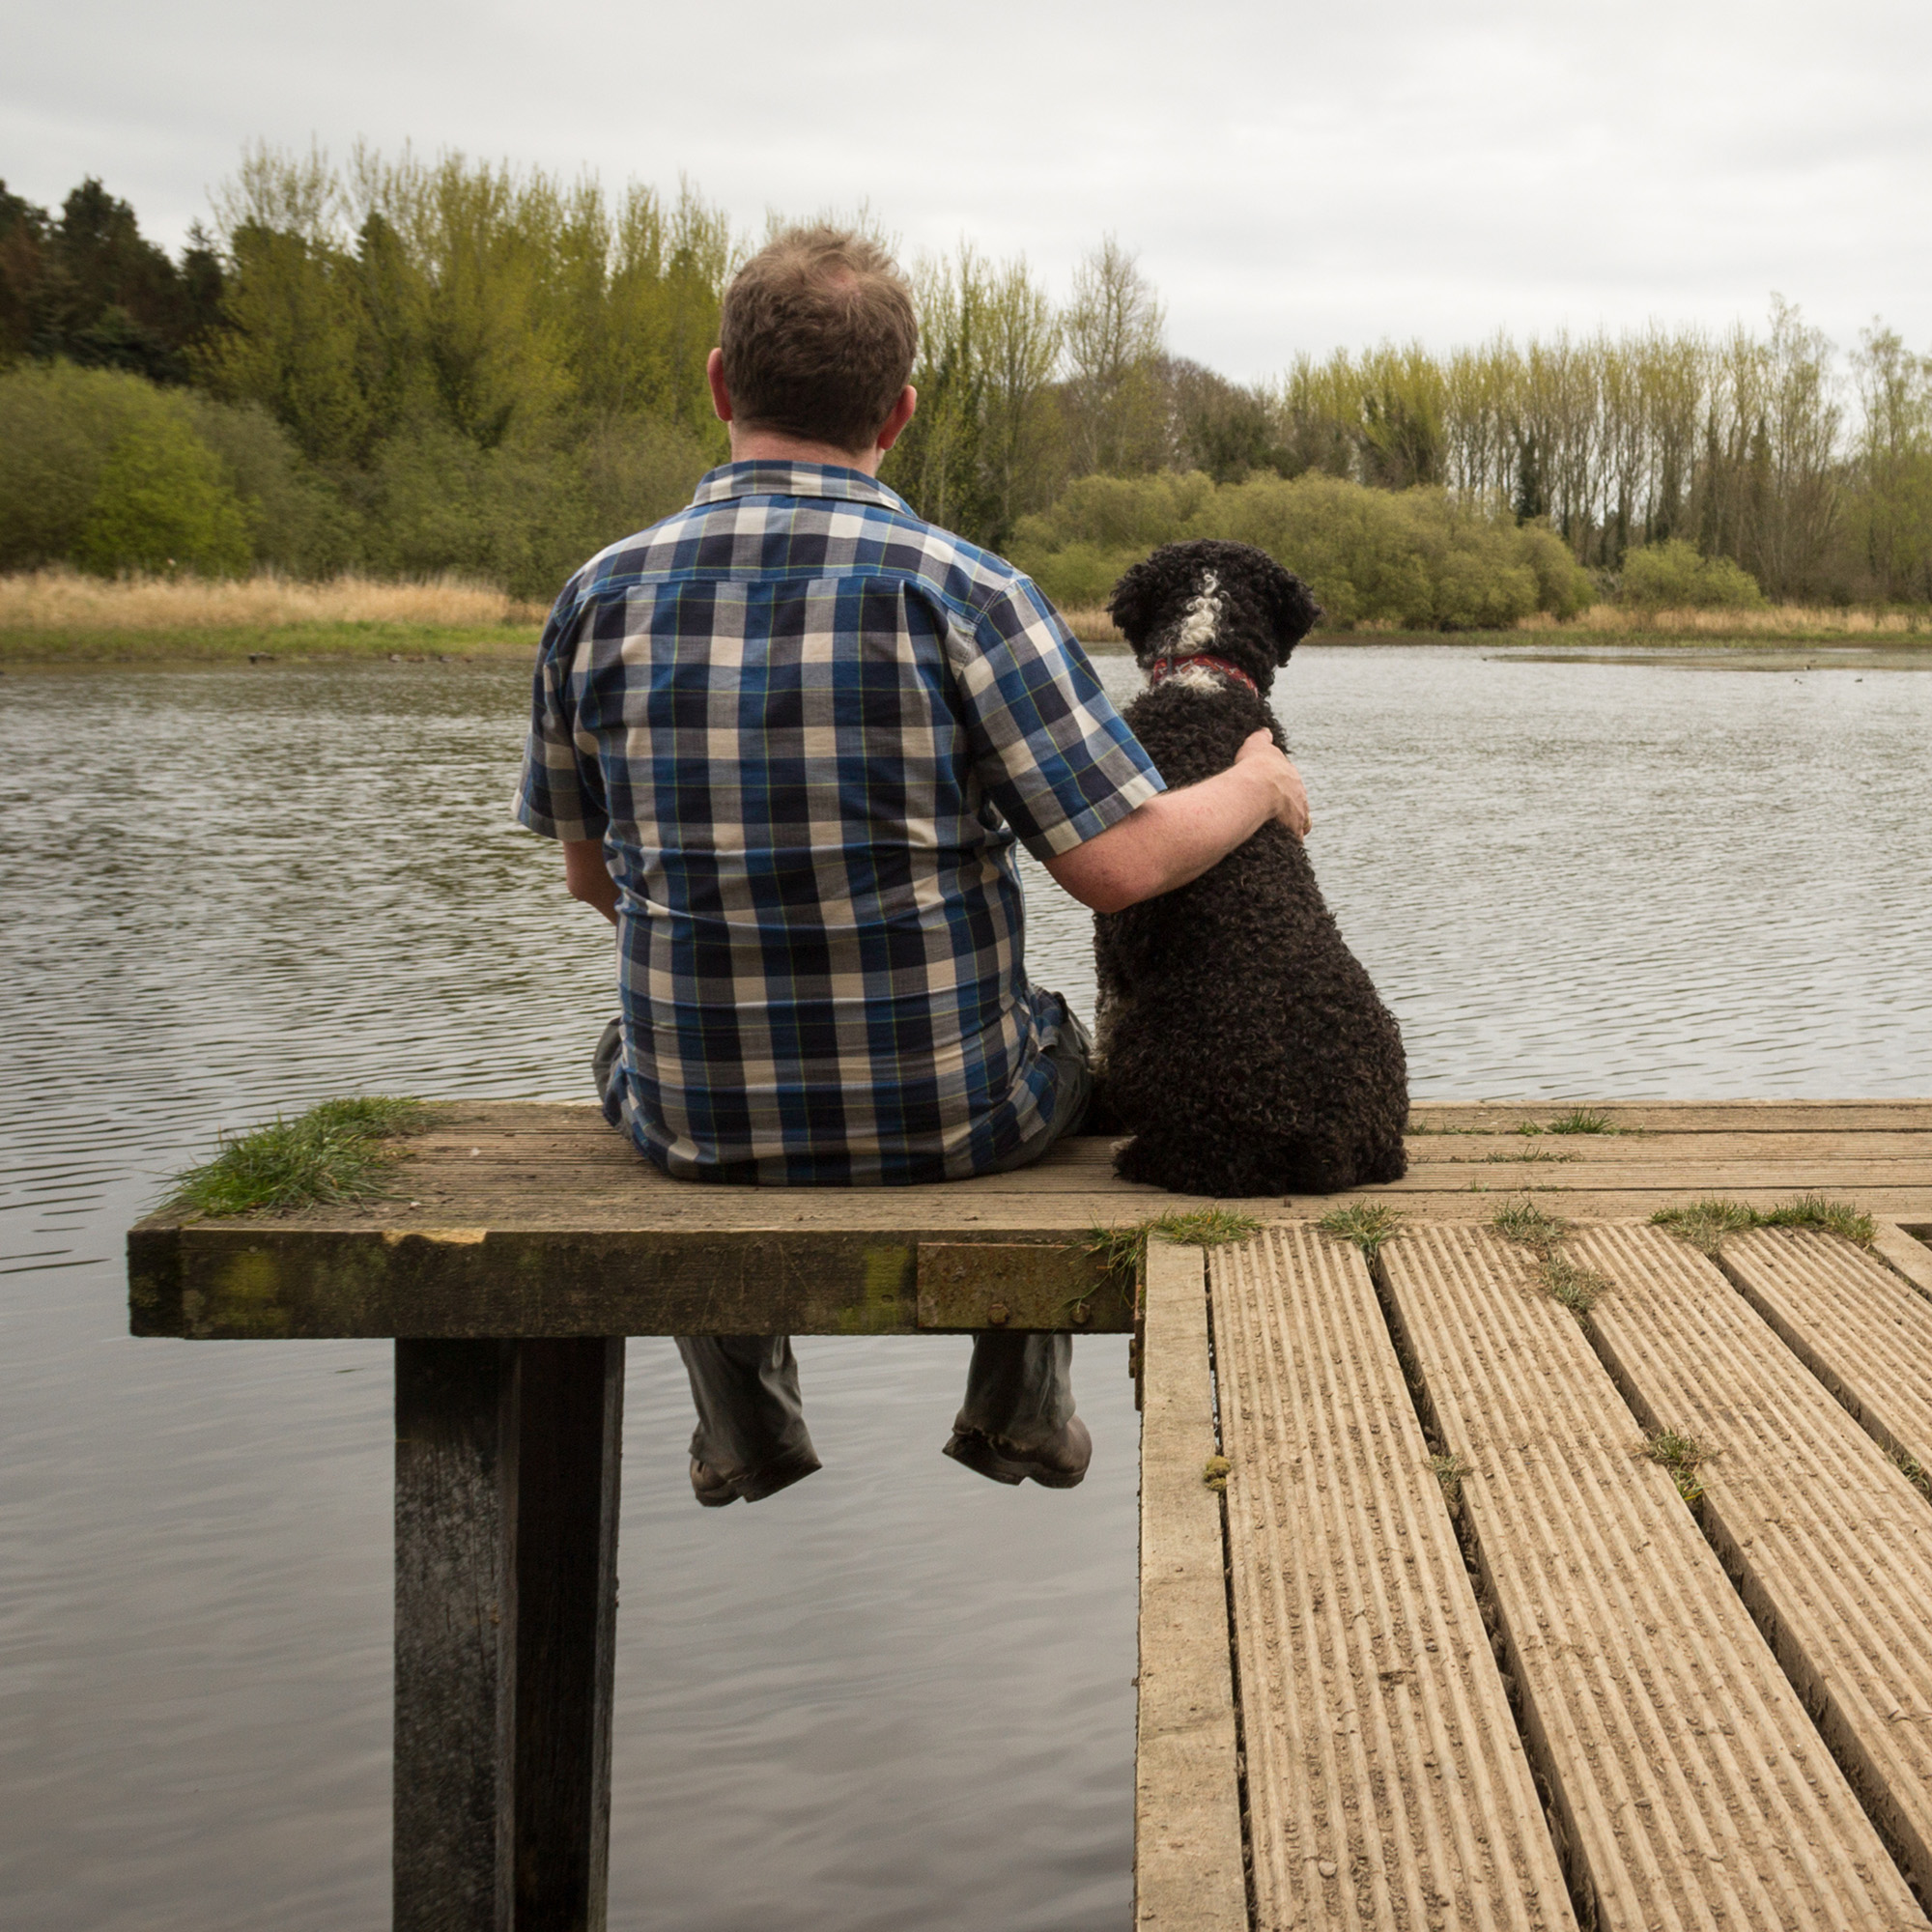 Man and dog on a dock